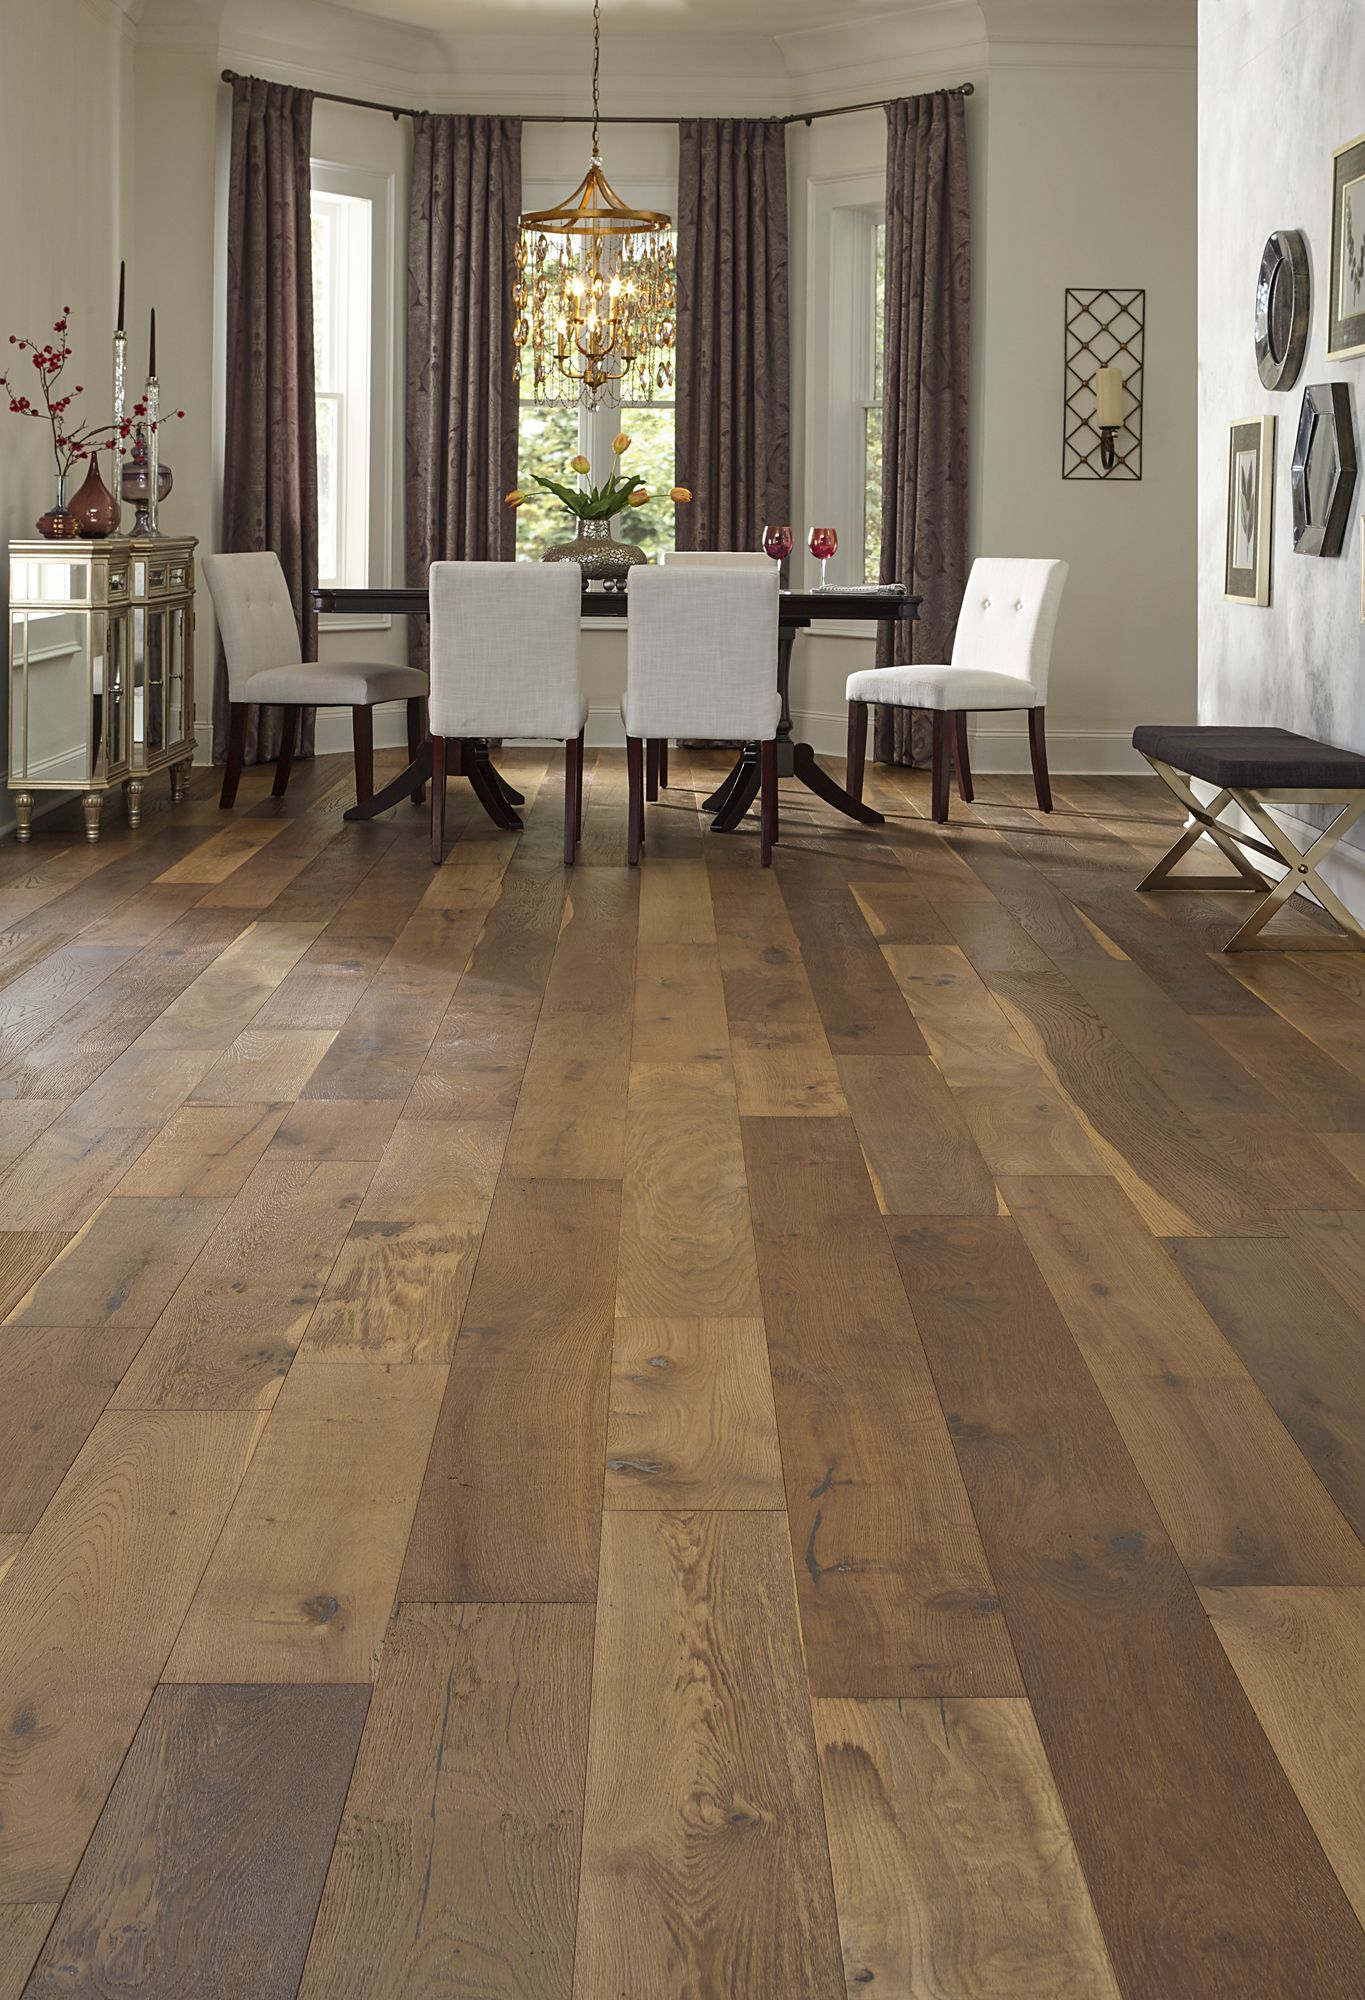 Bellawood Willow Manor Oak Offers Extra Wide 7 1 2 Planks And A Fumed Rustic Look Accented By Sawn Marks Wood Floors Wide Plank Bamboo Wood Flooring Flooring